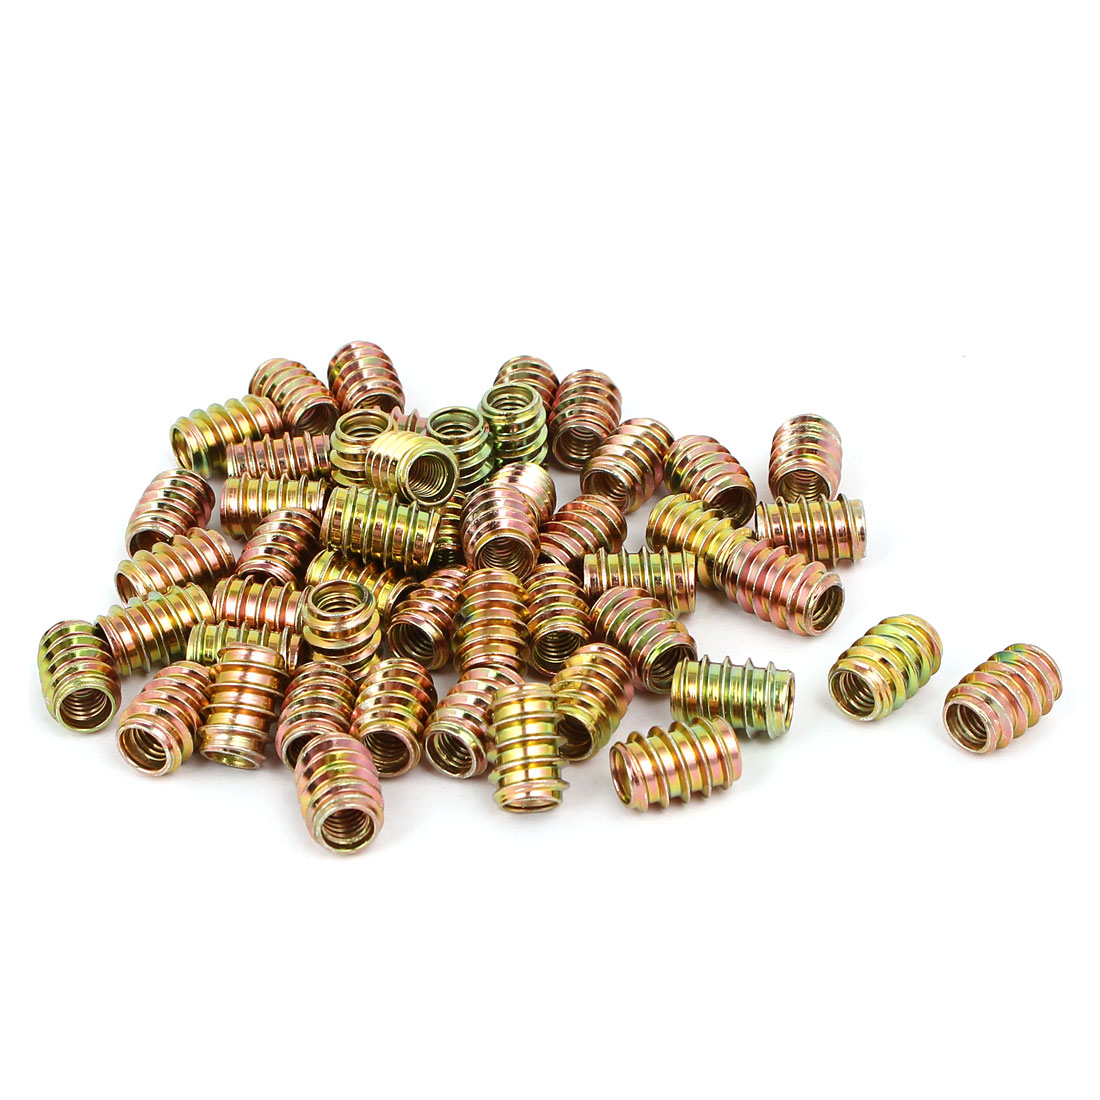 M6x15mm Carbon Steel Yellow Zinc Plated Furniture Threaded Insert Nut 50pcs